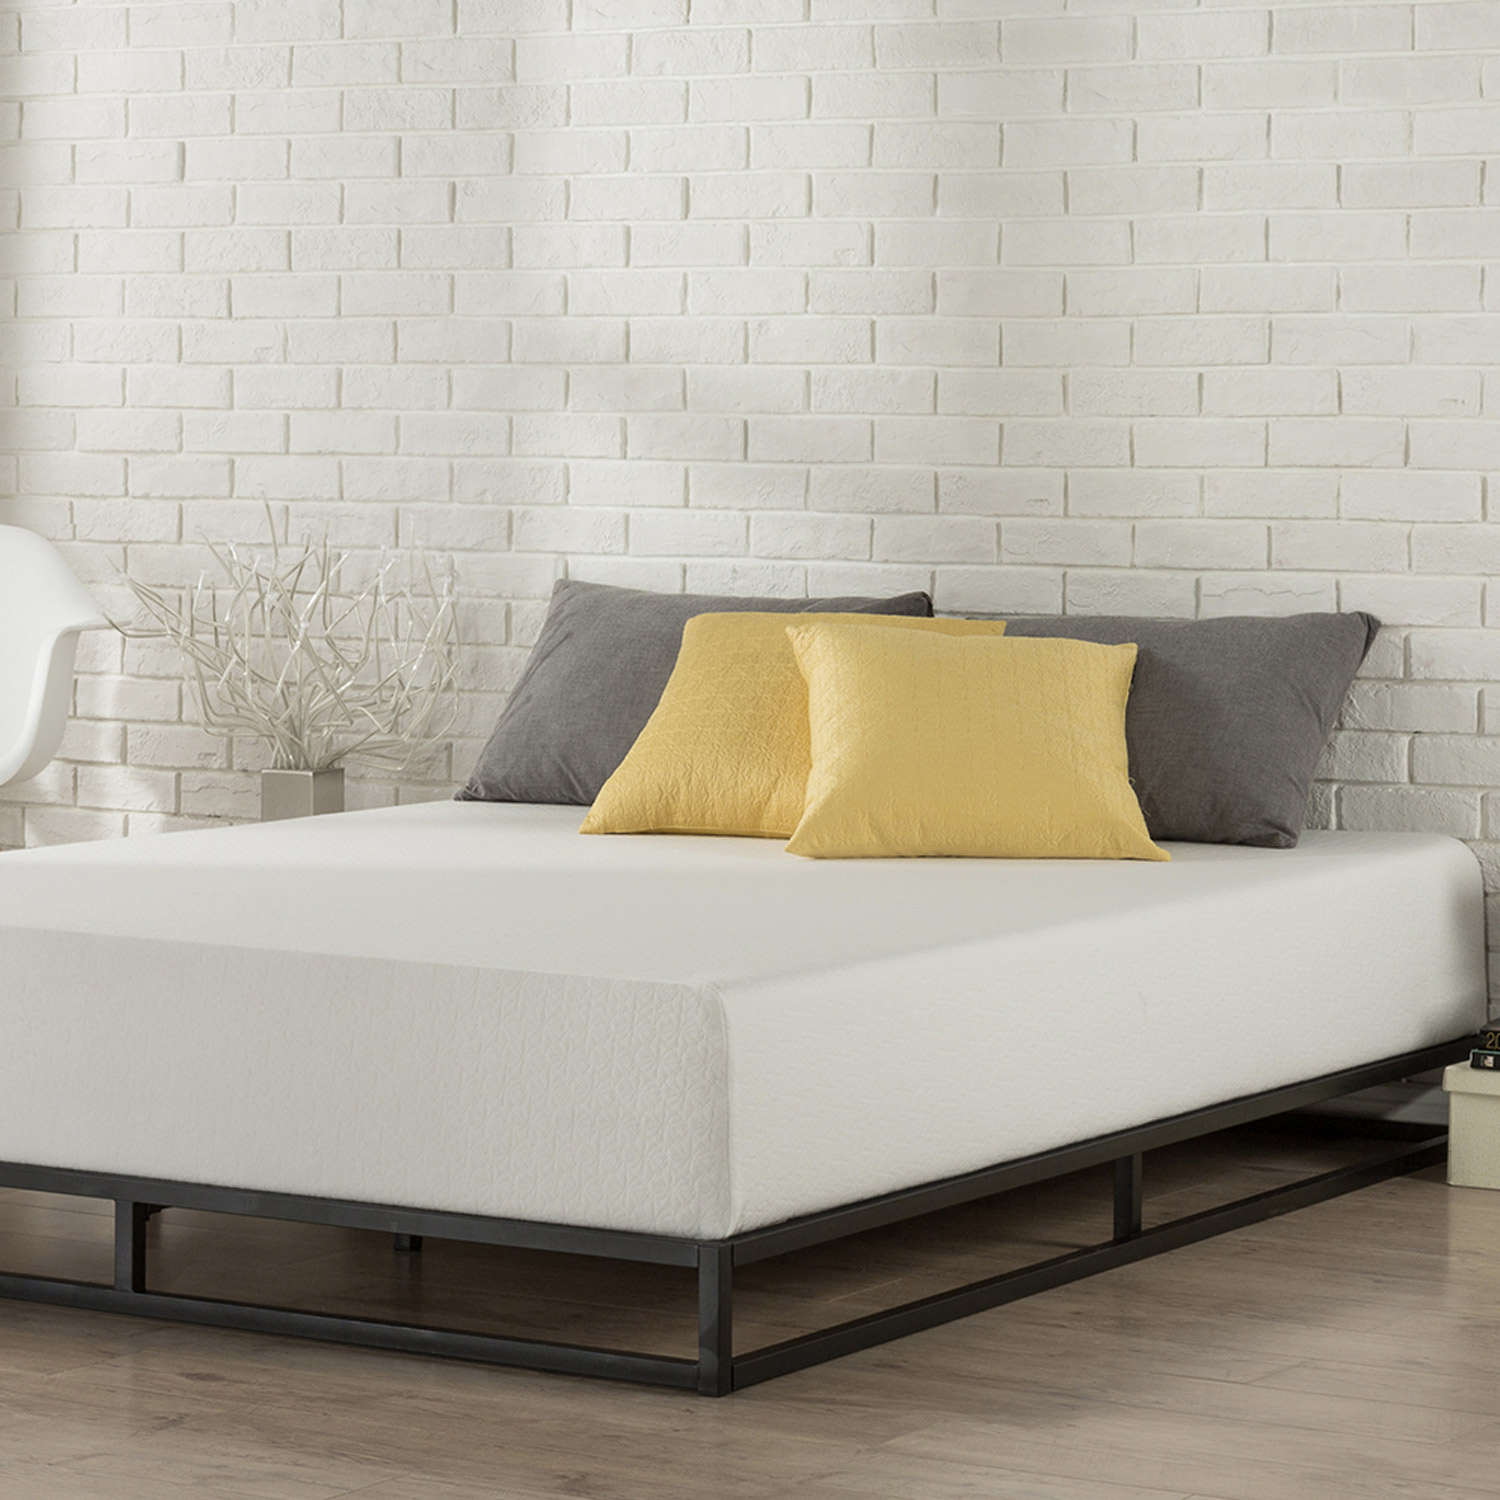 Zinus-Joesph-SINGLE-DOUBLE-QUEEN-KING-Metal-Low-Bed-Base-Mattress-Frame-Timber thumbnail 32